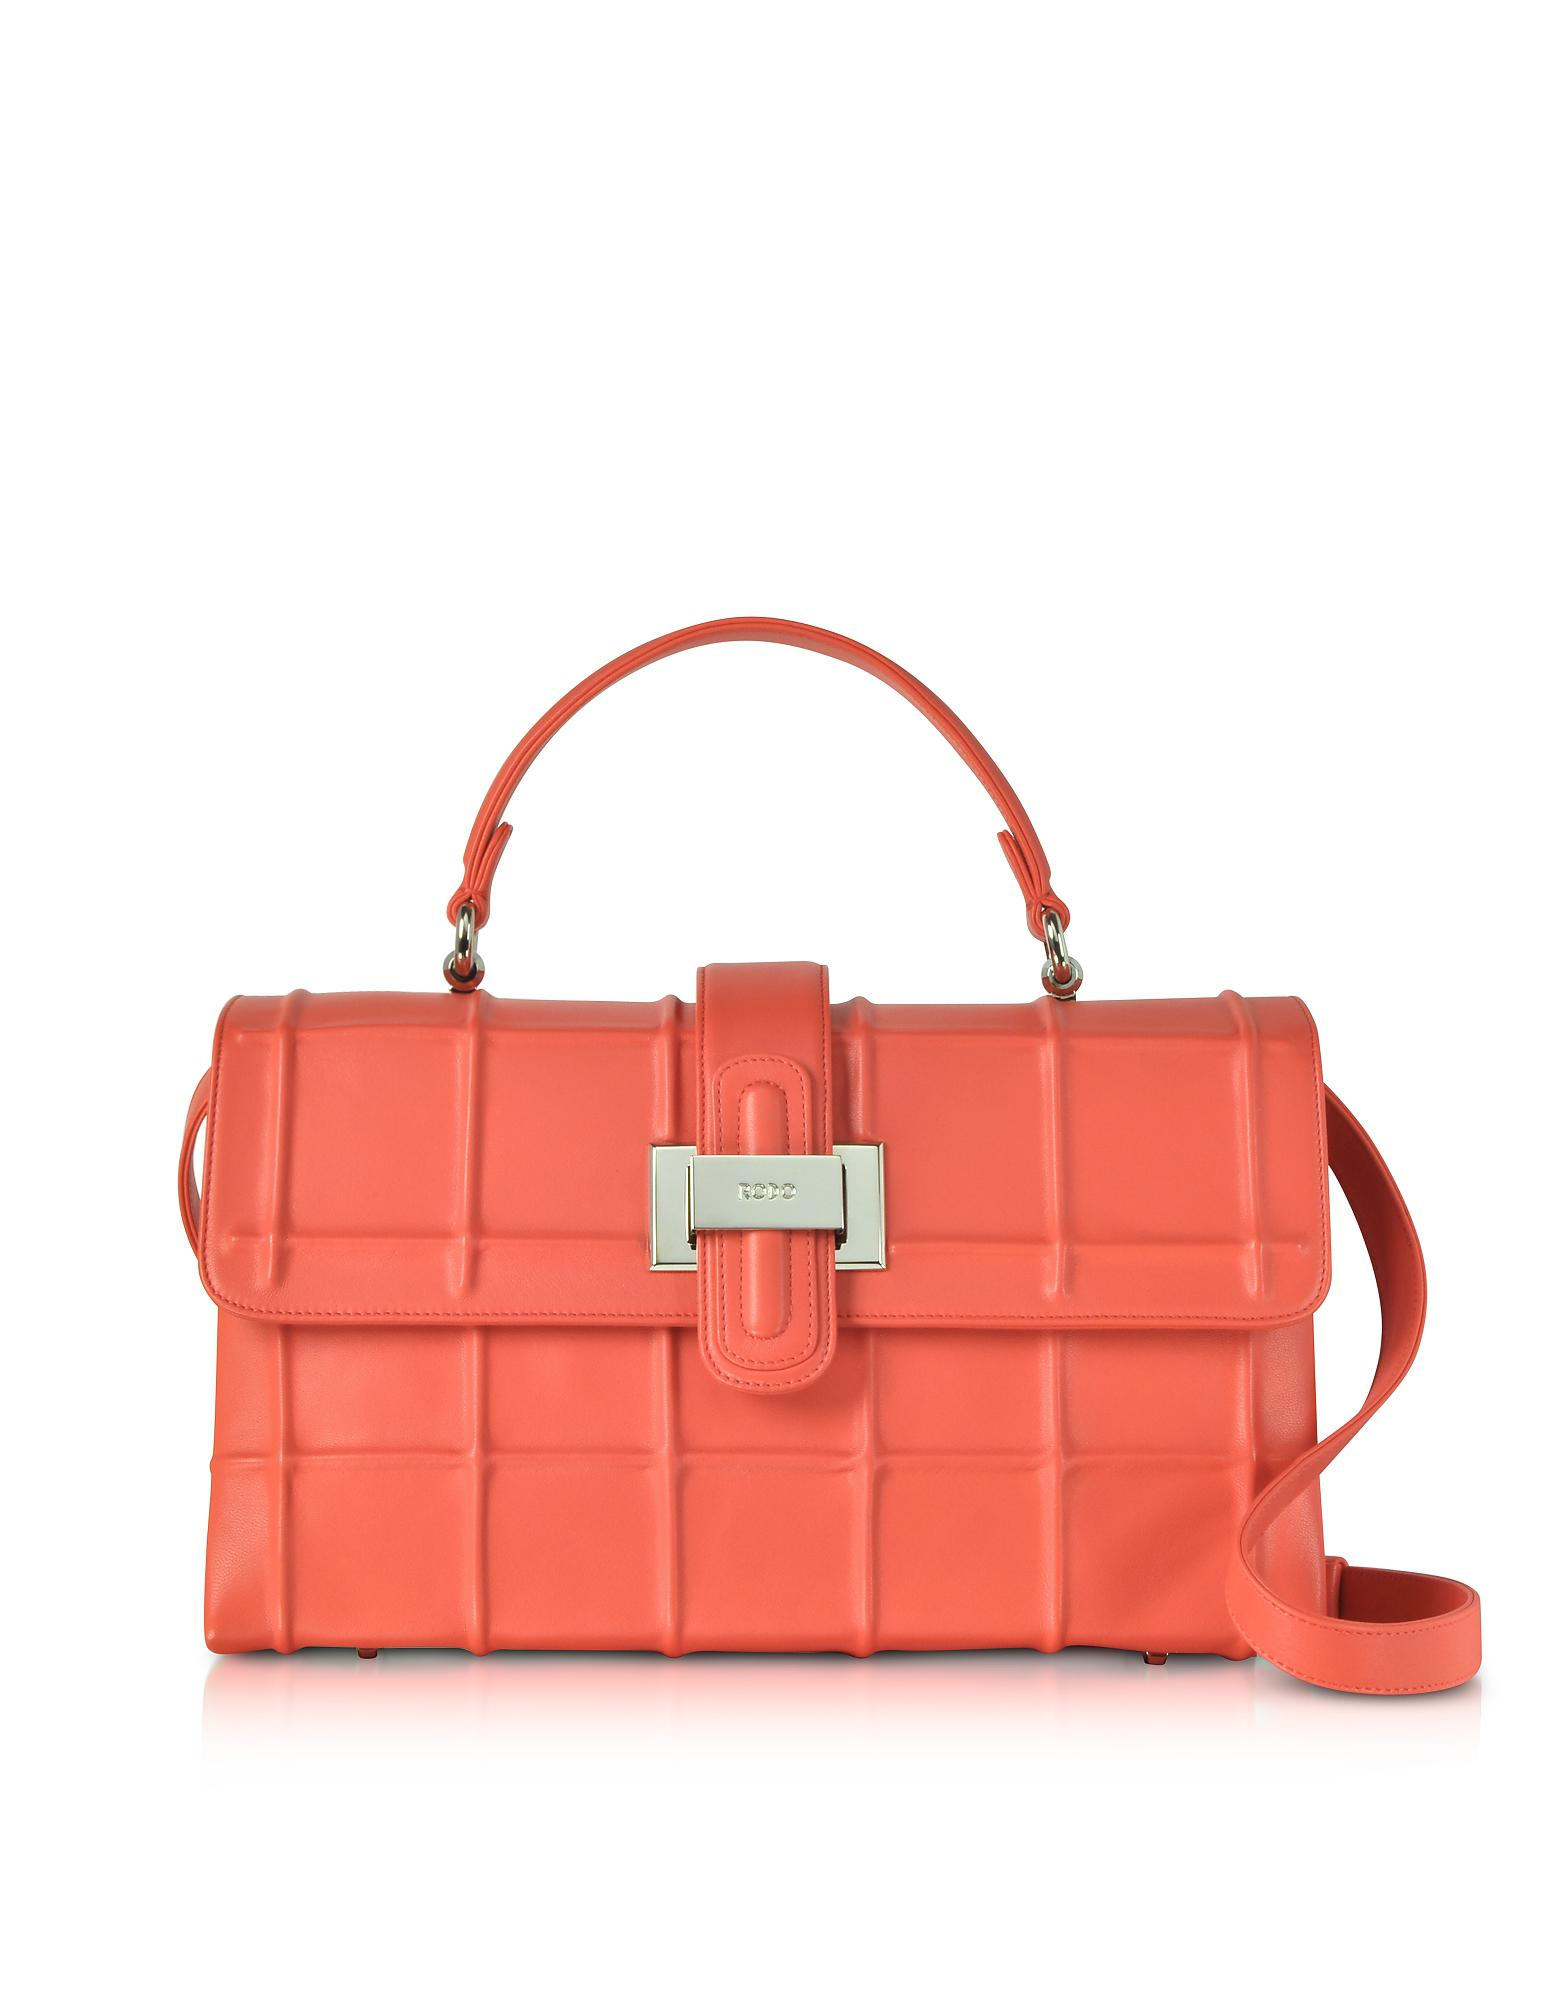 0424d8894a12 Rodo Poppy Nappa Leather Lunch Bag in Red - Lyst